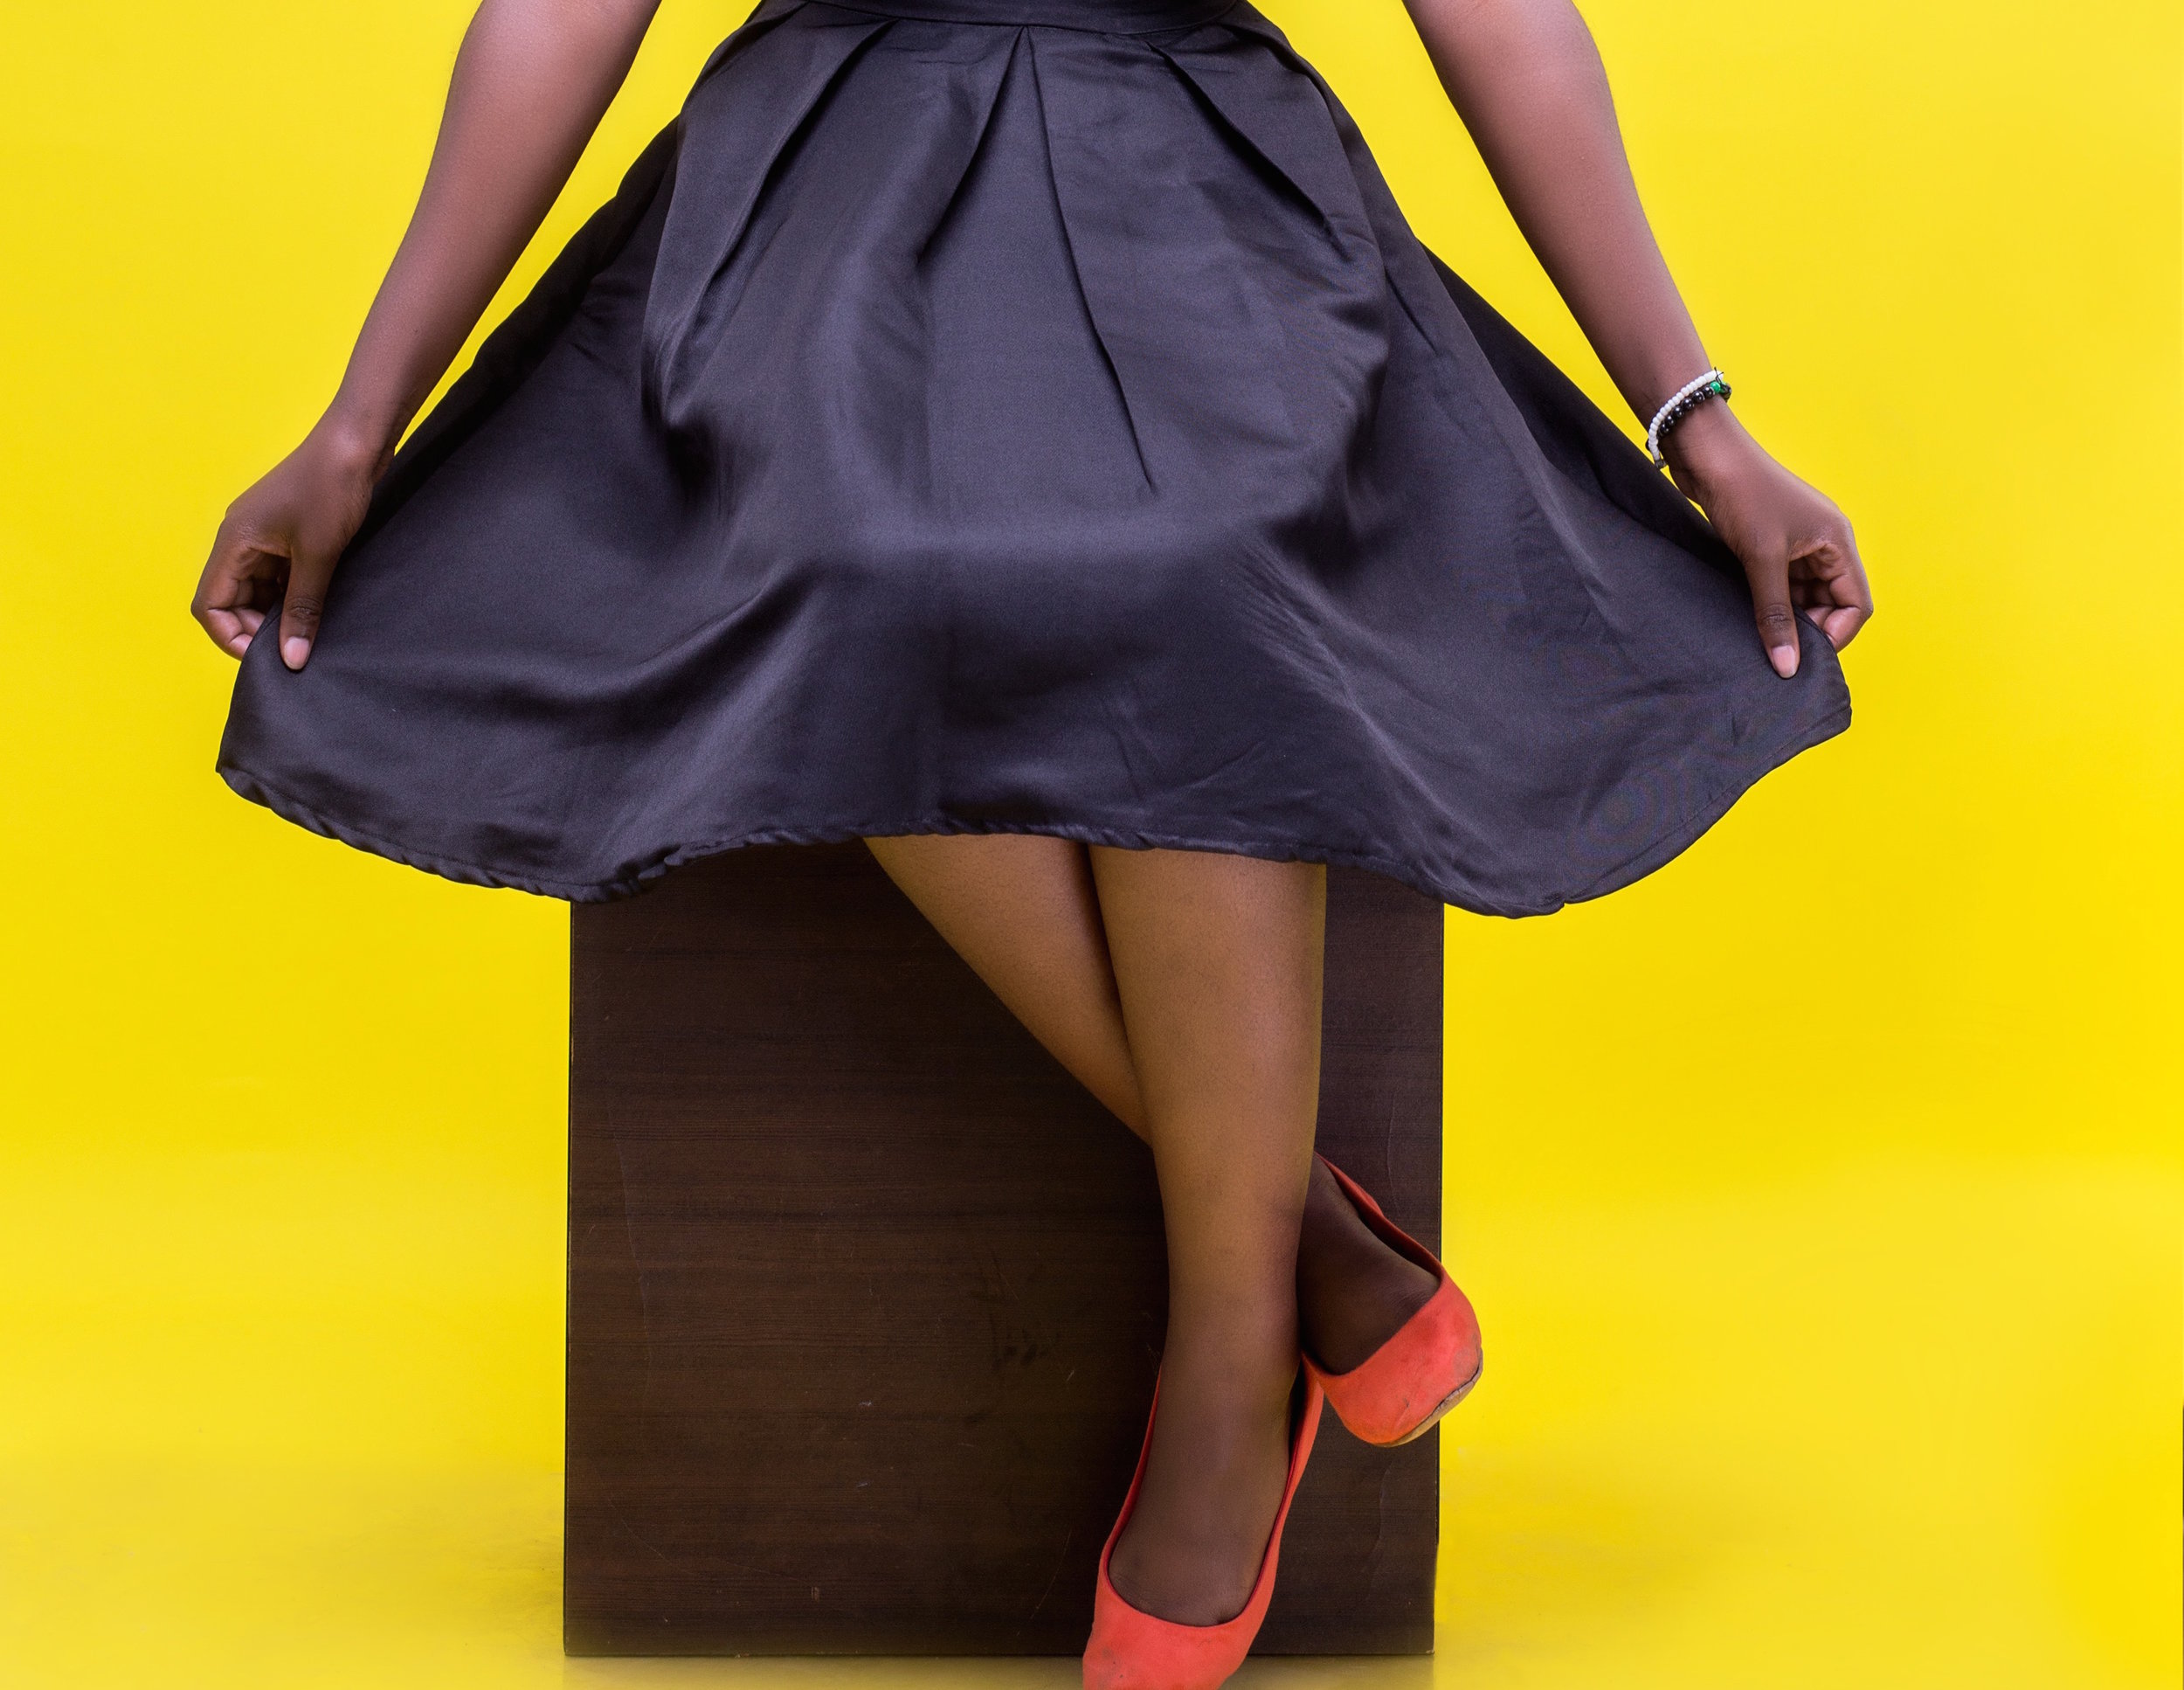 Josepha Mafubo //Creative Commons   [Photo description: a young black womans spreads out her arms and skirt as she sits on a wooden stool].